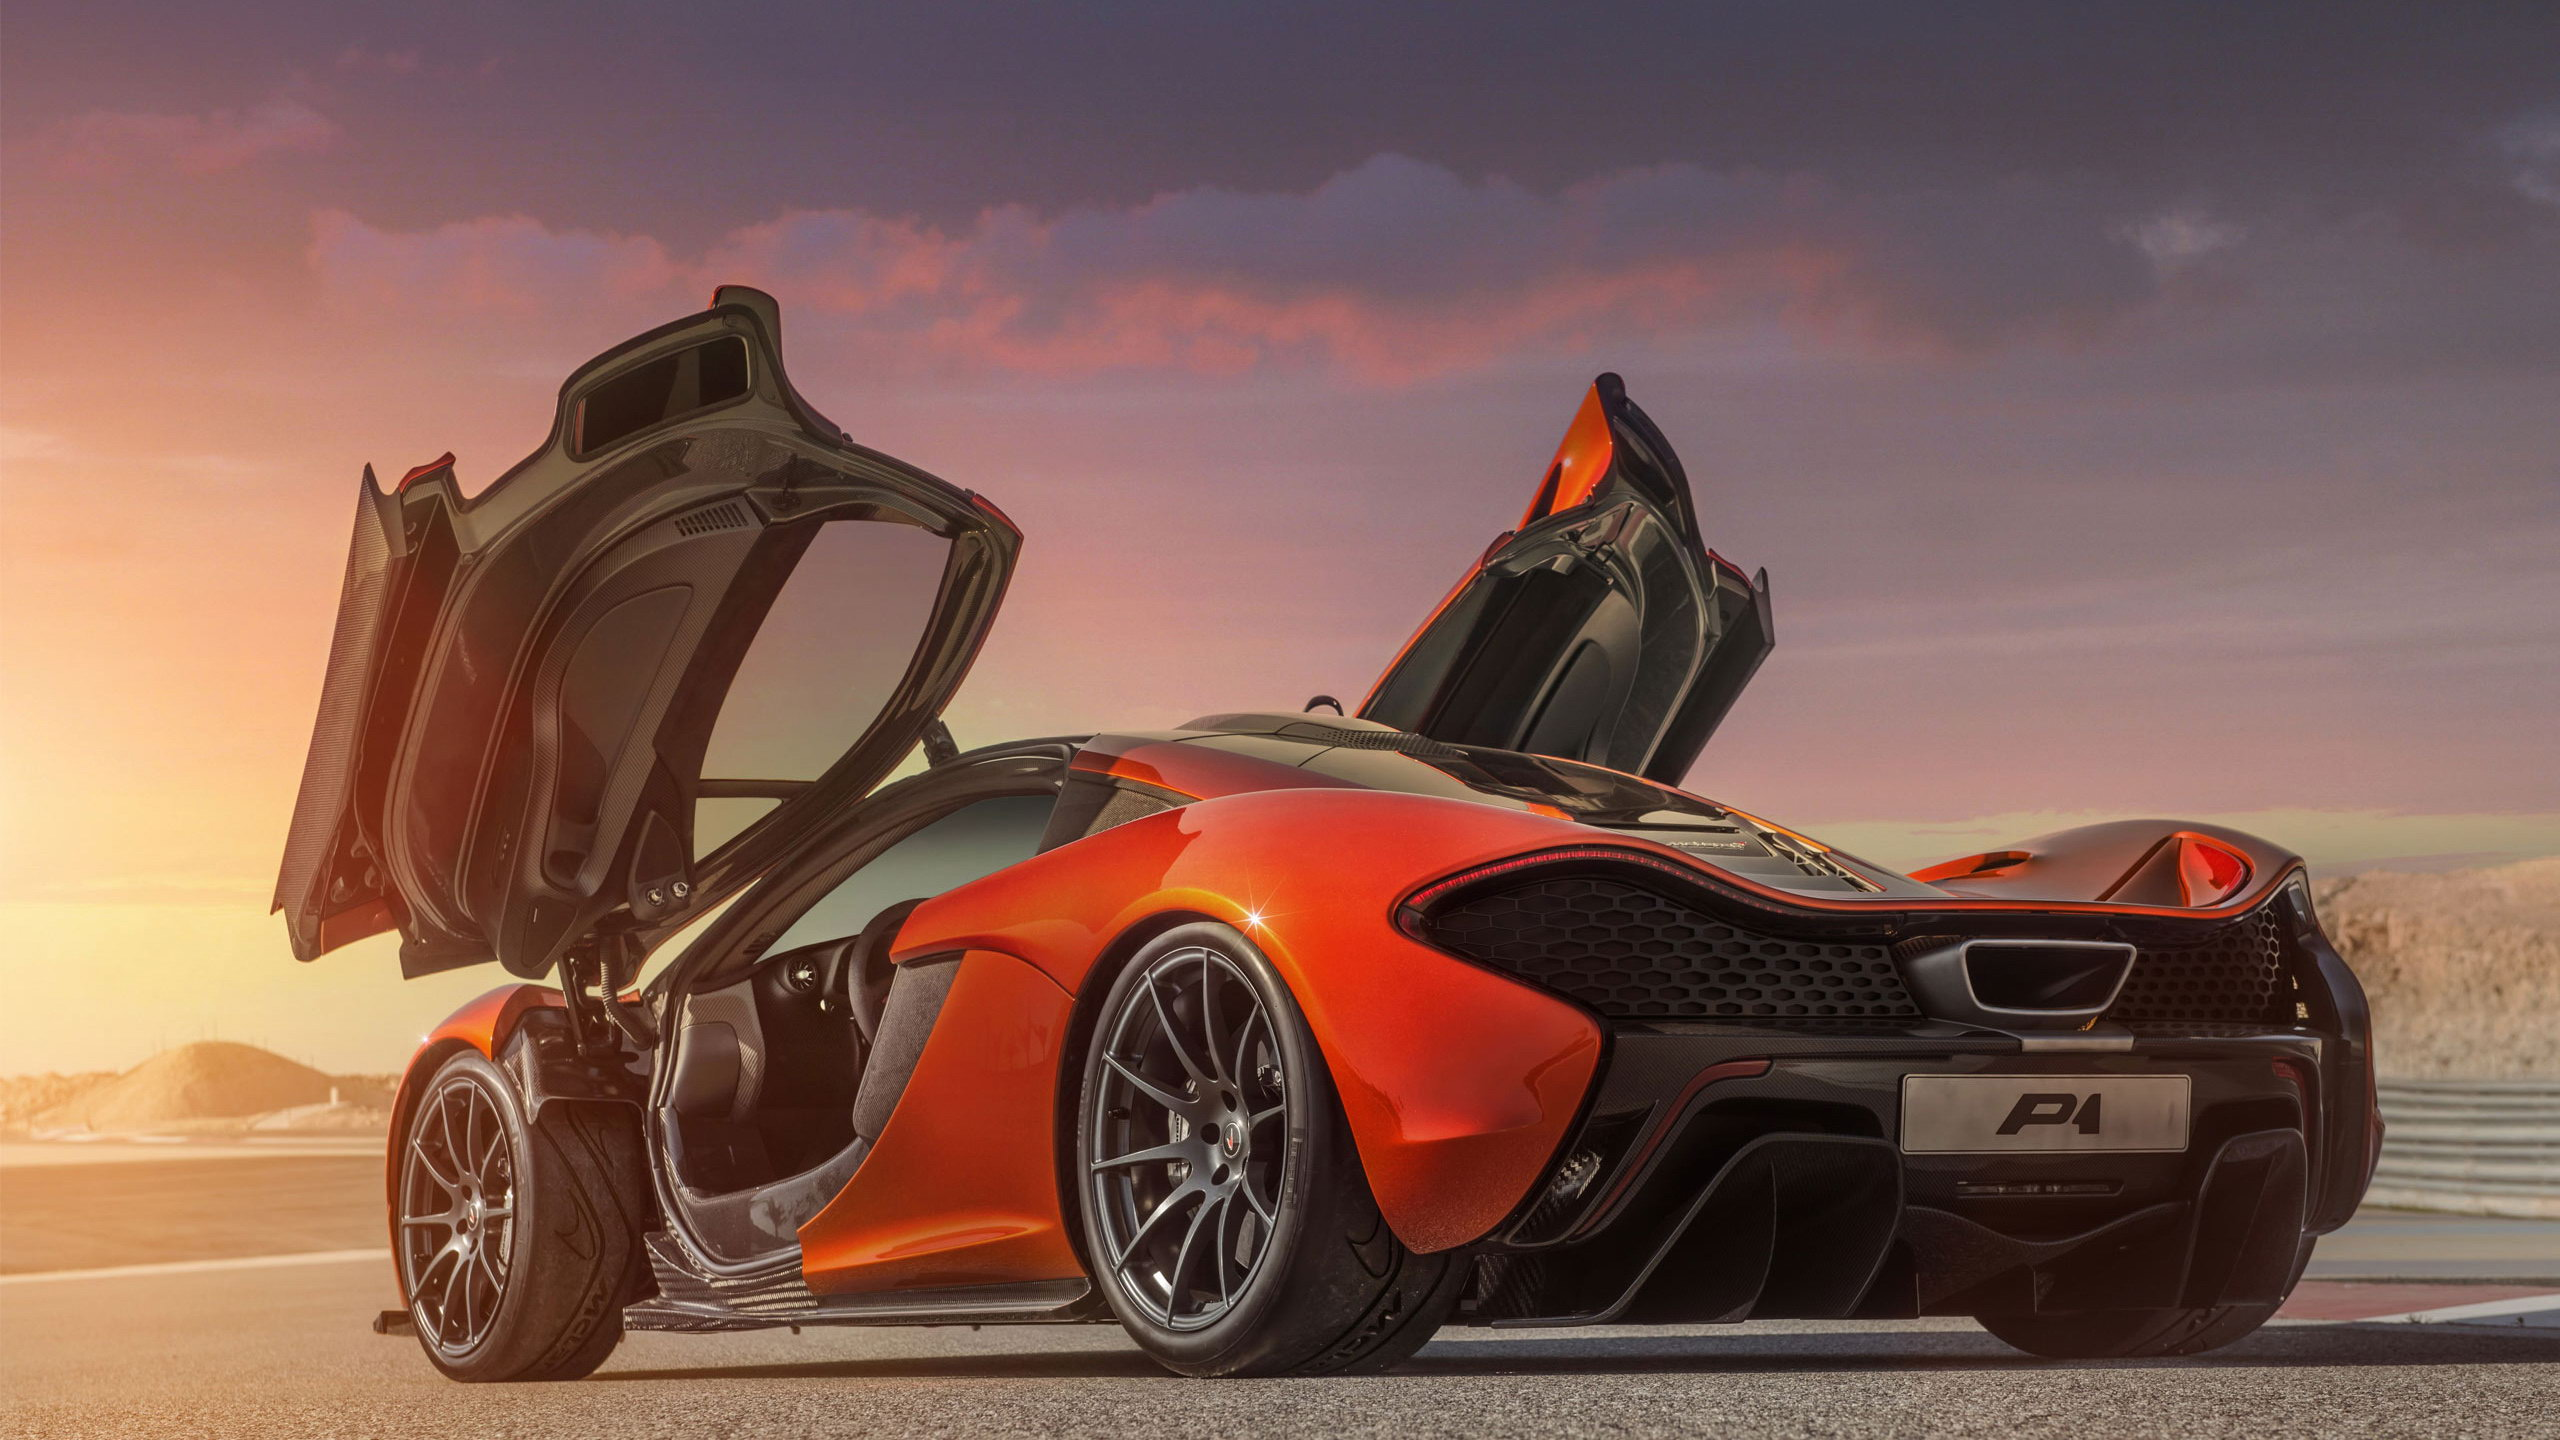 Get car wallpaper free download app android now; 49 Speedy Car Wallpapers For Free Desktop Download